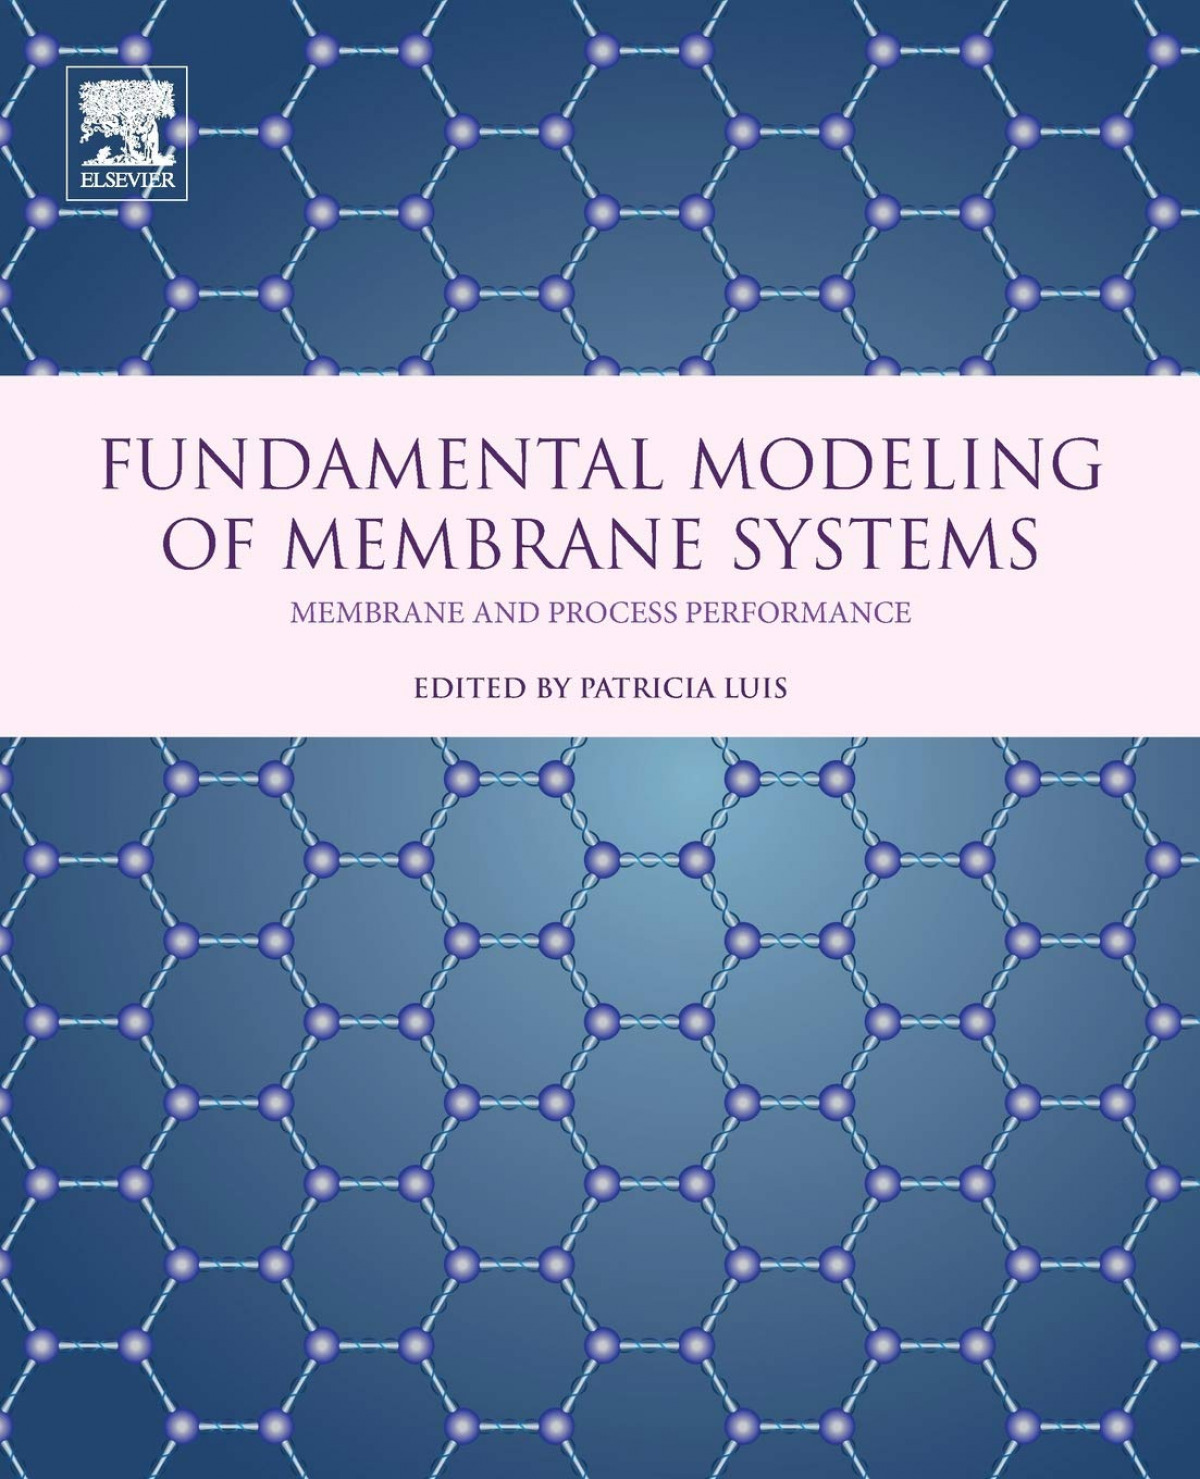 Fundamental modeling of membrane systens